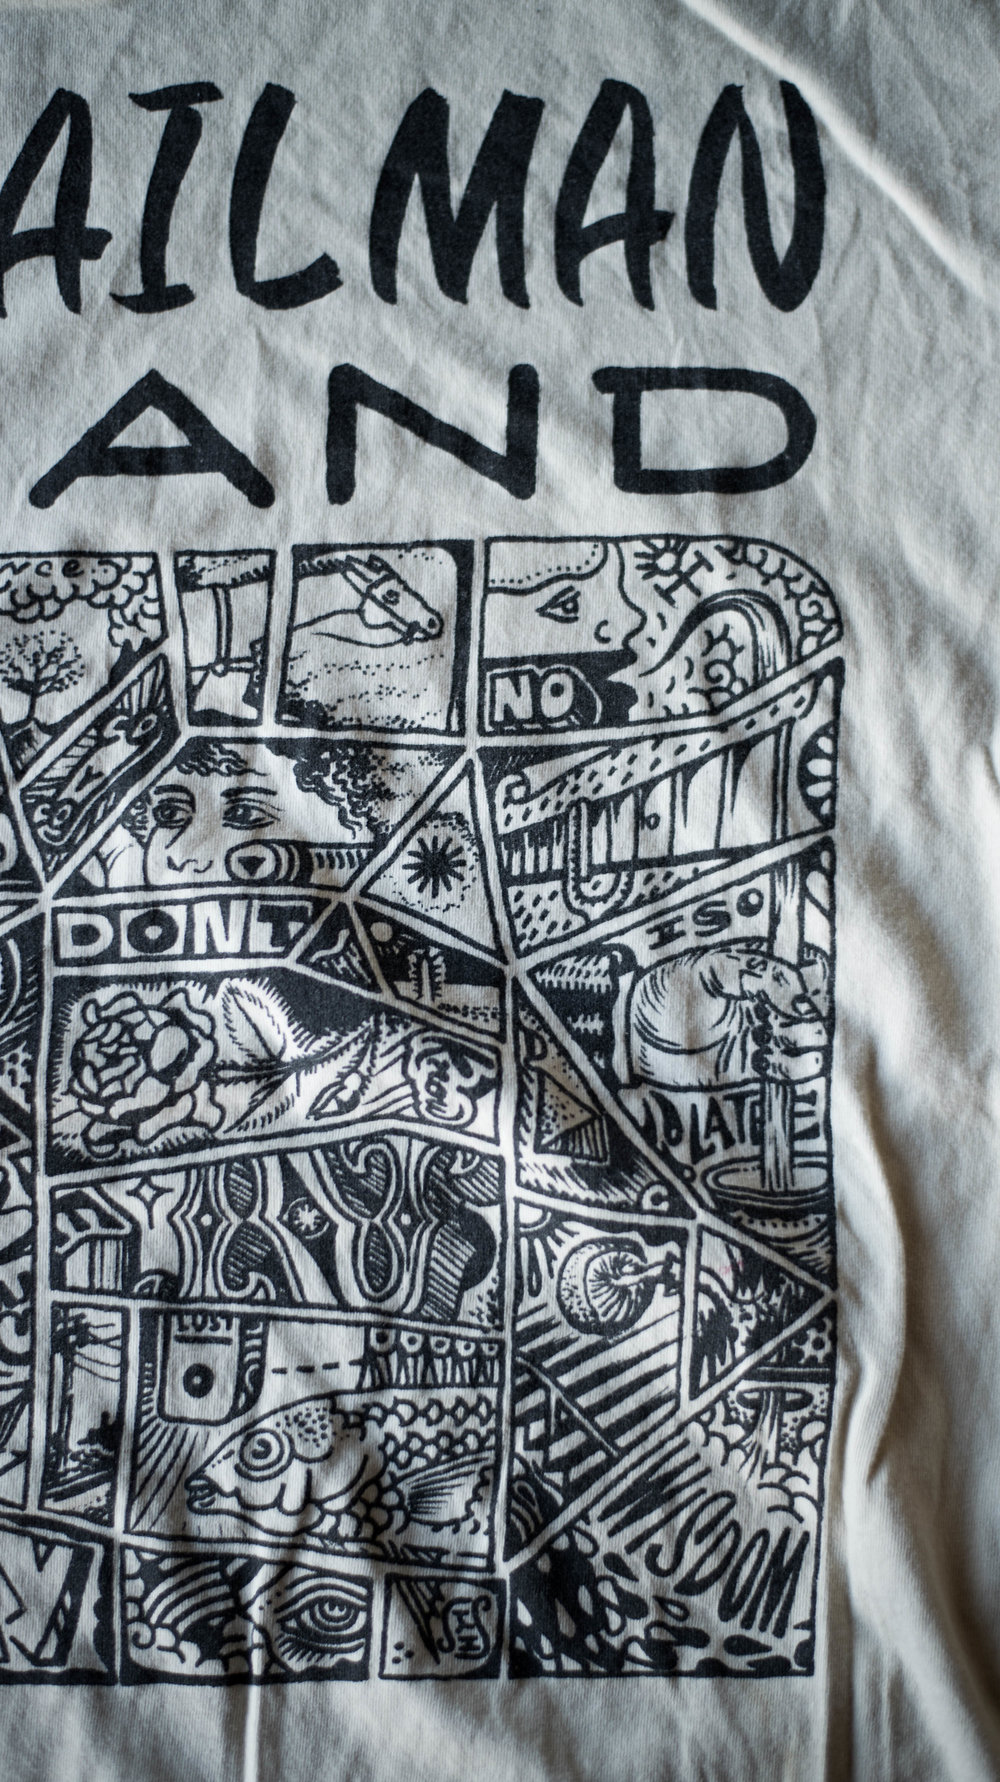 Mailman Land. Print method VINTAGE. Screen printed on a Next Level shirt. Printed by A Small Print Shop.